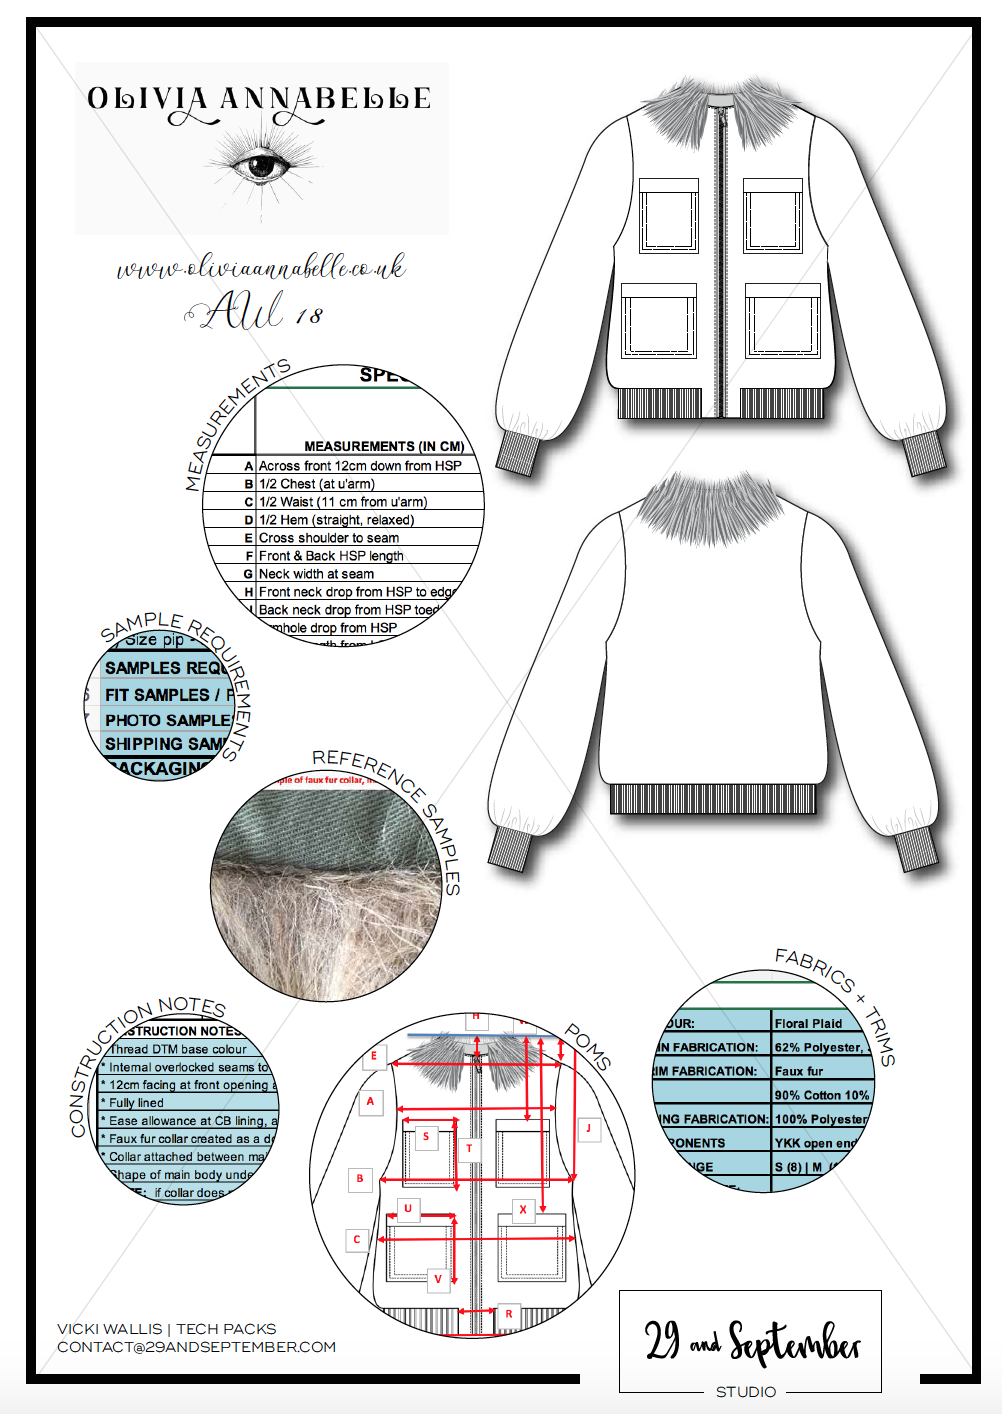 29andSeptember Studio Fashion Technical Drawings and Tech Pack Portfolio